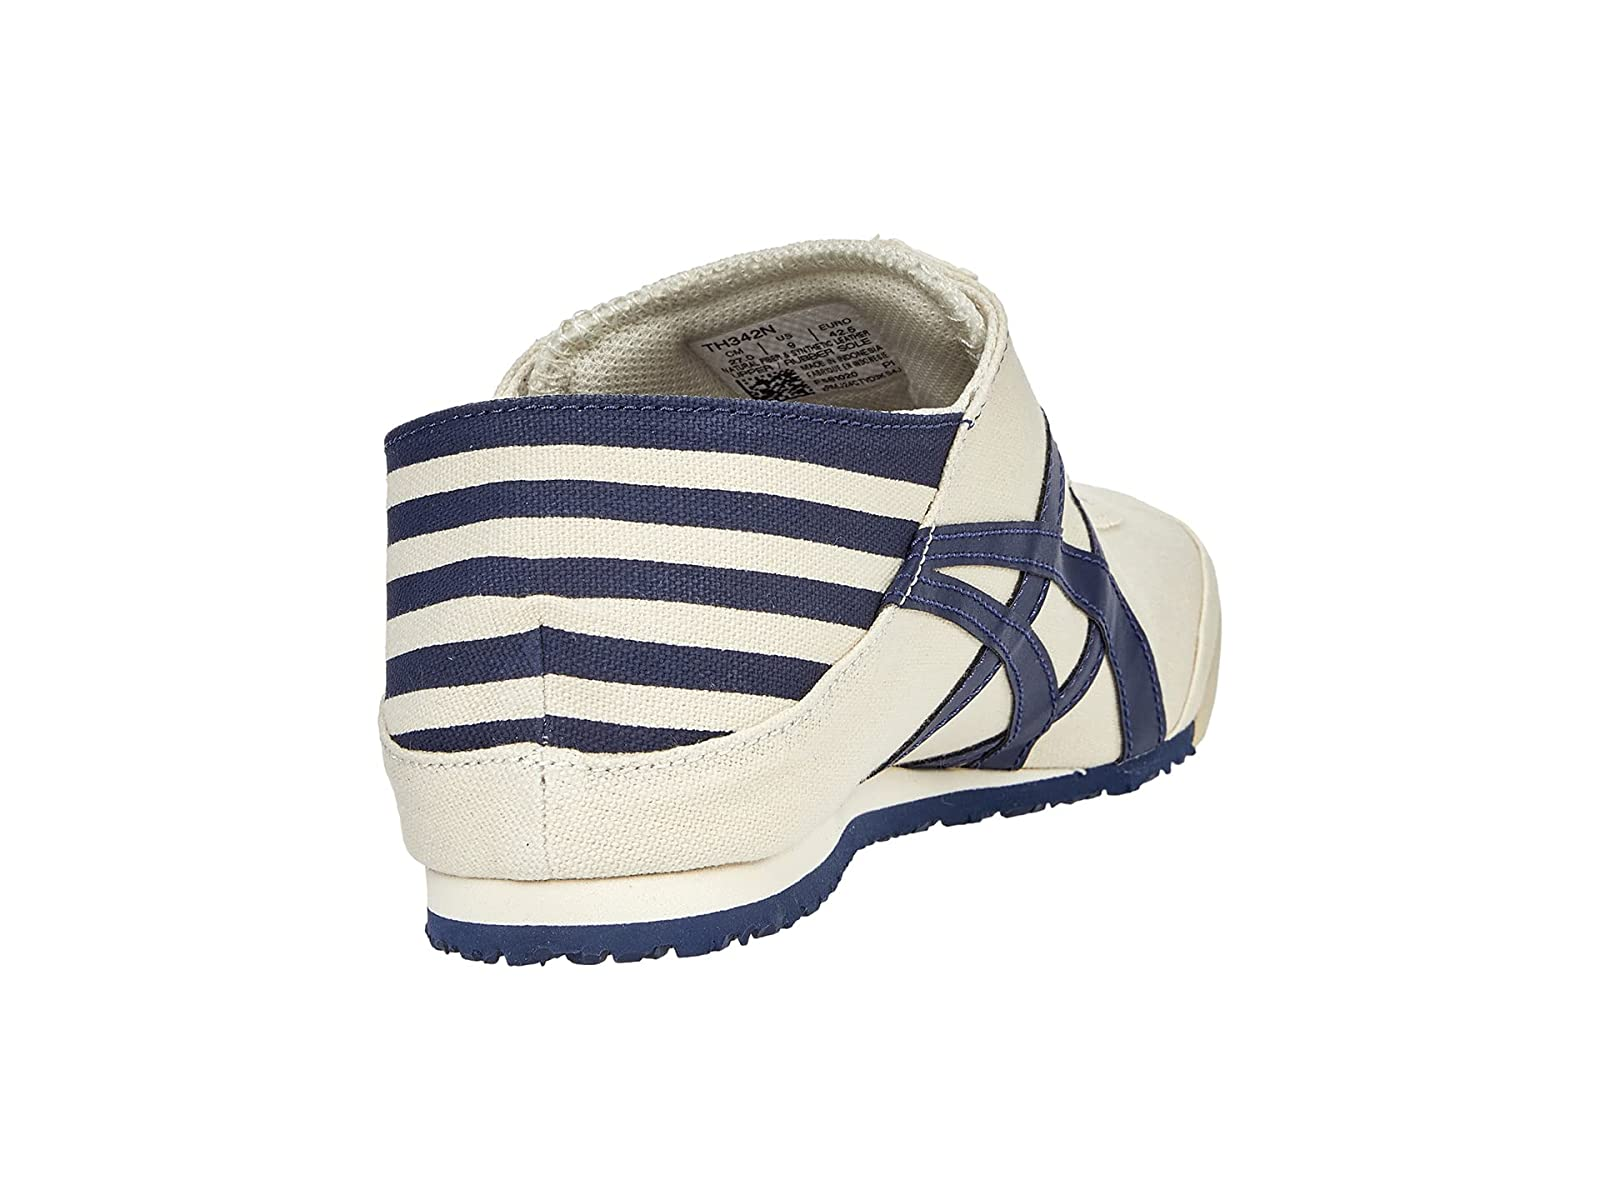 miniature 6 - Adulte Unisexe Baskets & Athlétique Chaussures Onitsuka Tiger Mexico 66 Paraty